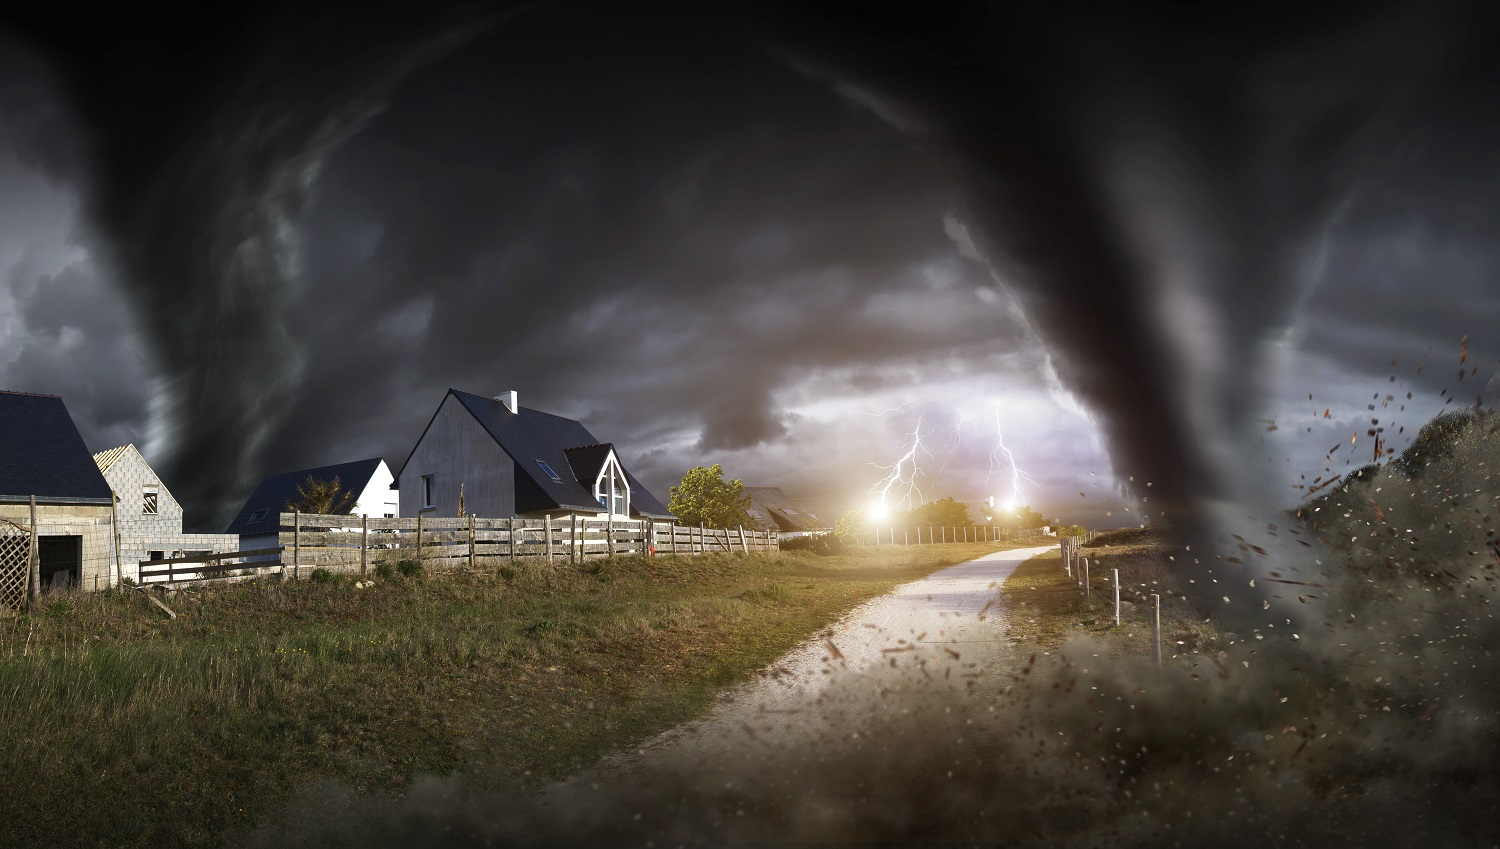 Storms and Tornadoes: Formation, Damage and Defensive Measures